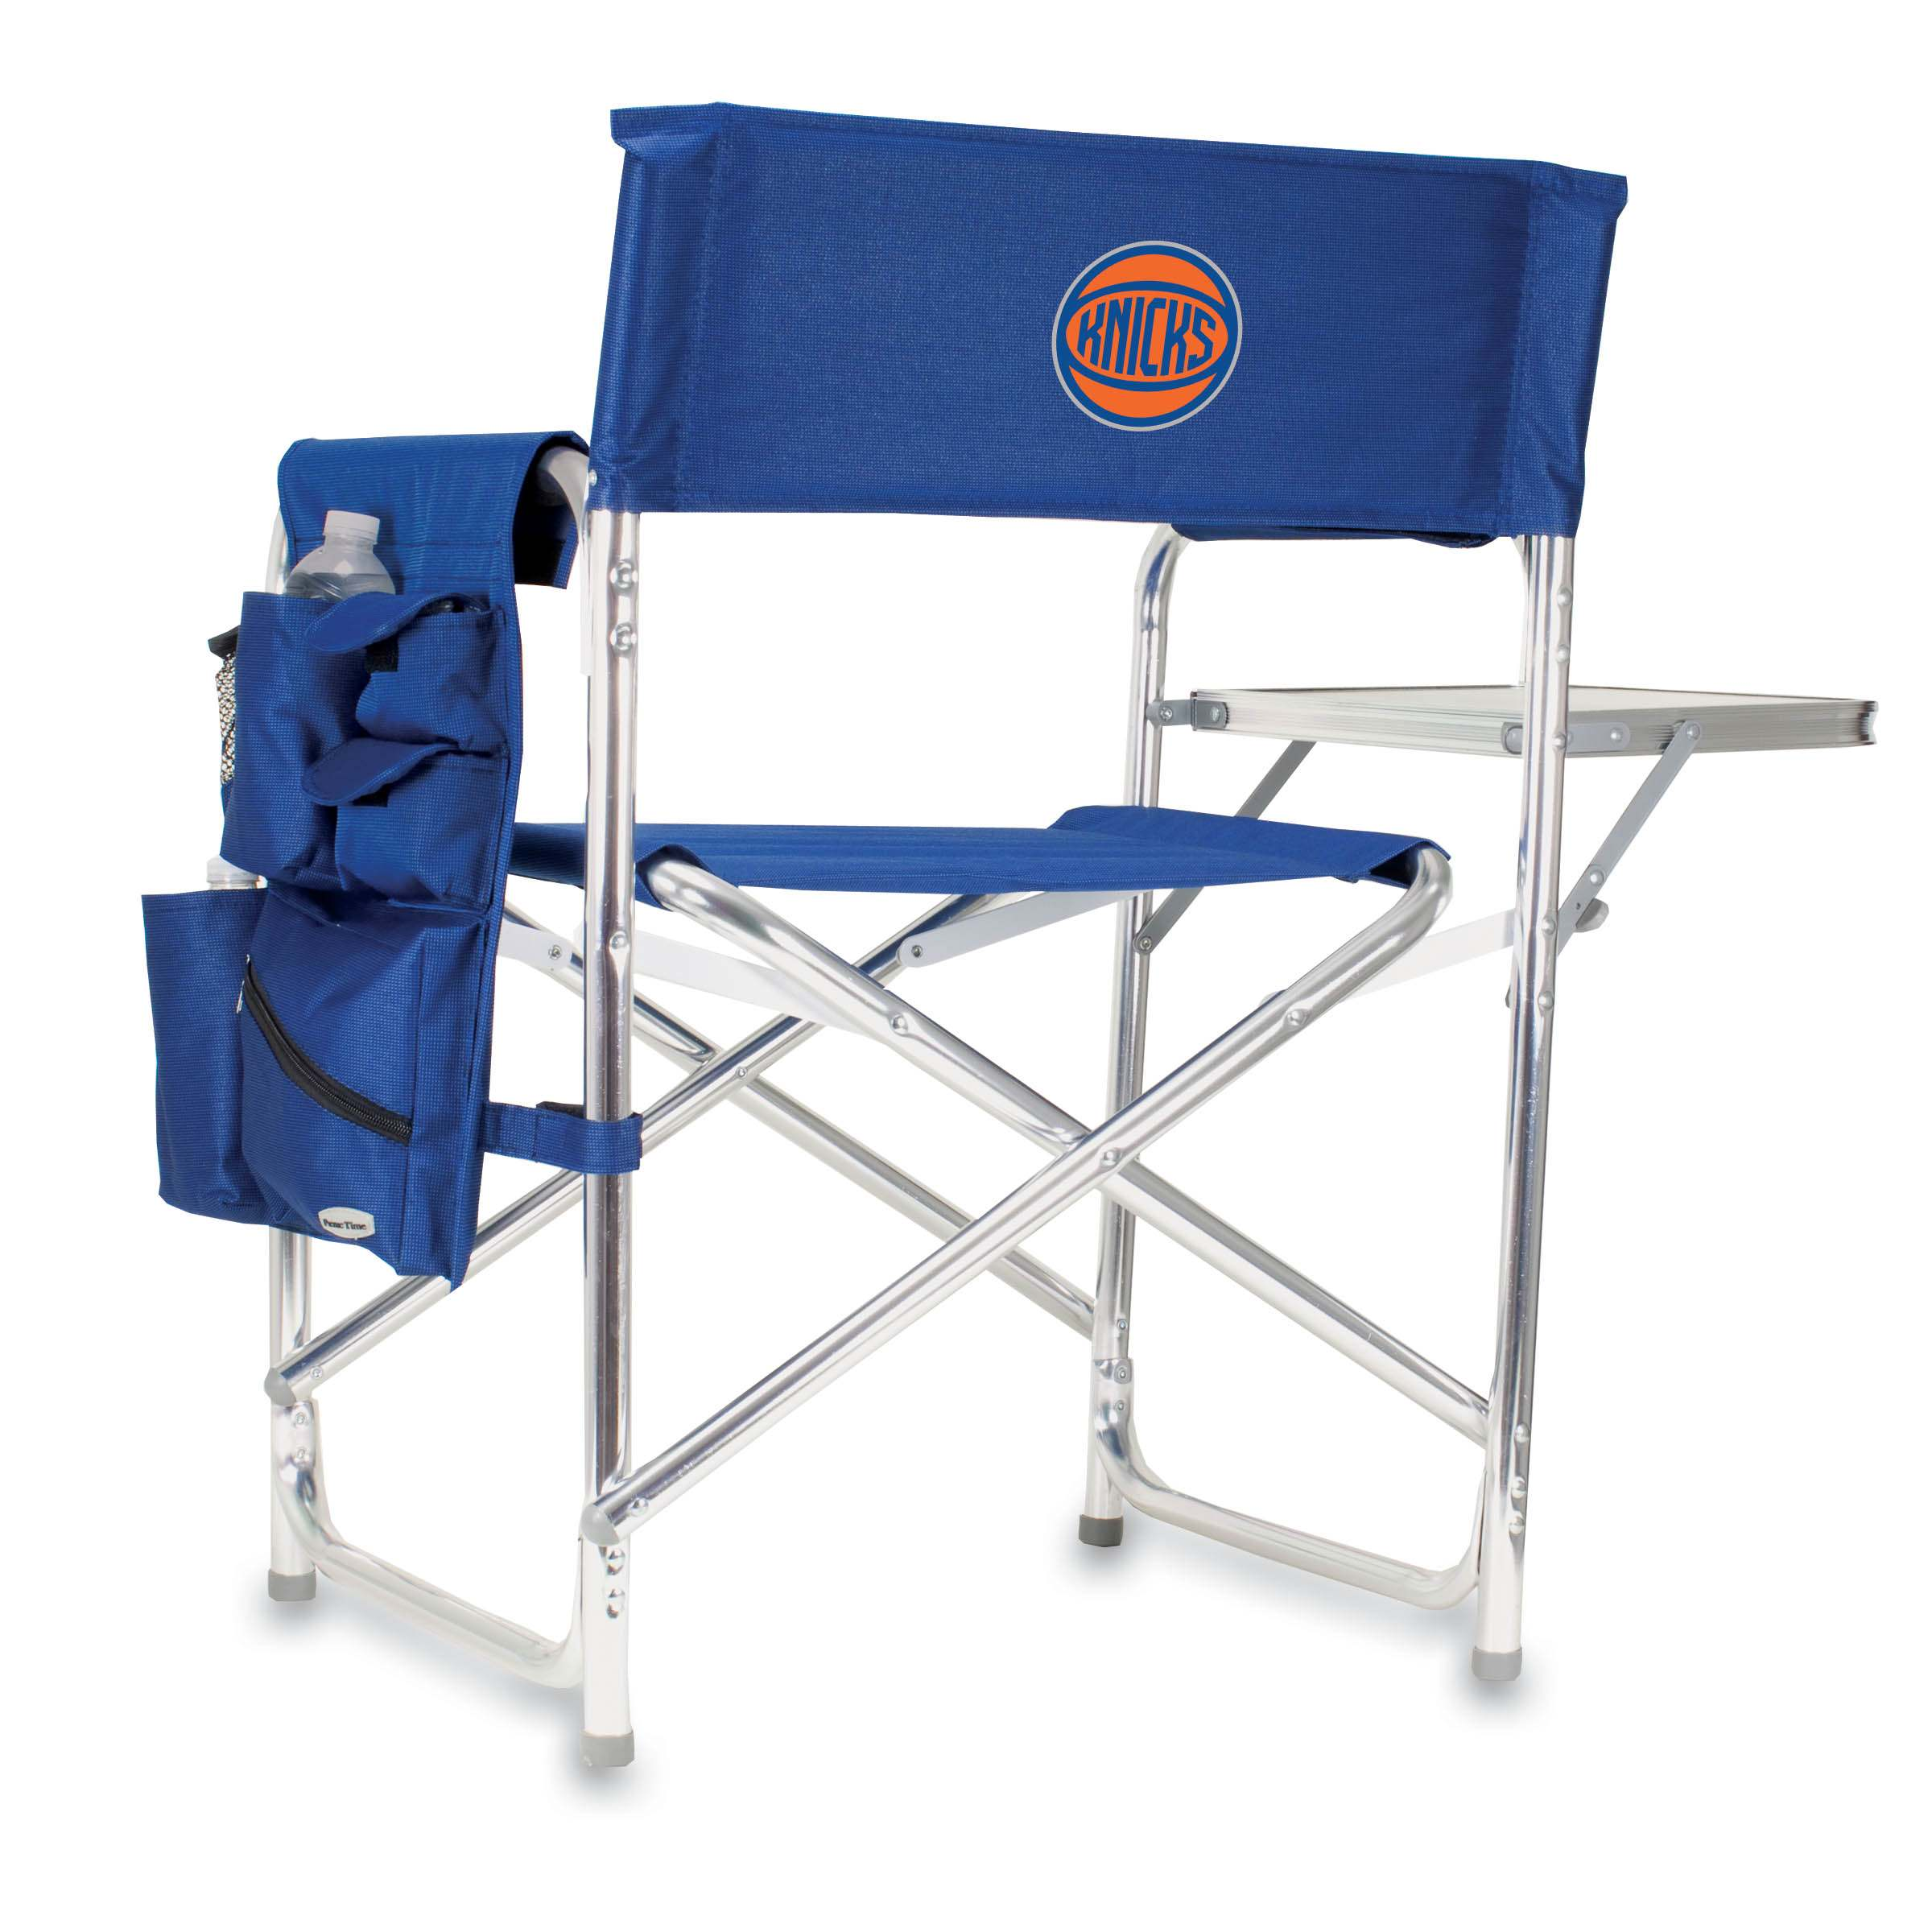 Picnic Time Nba Sports Chair New York Knicks